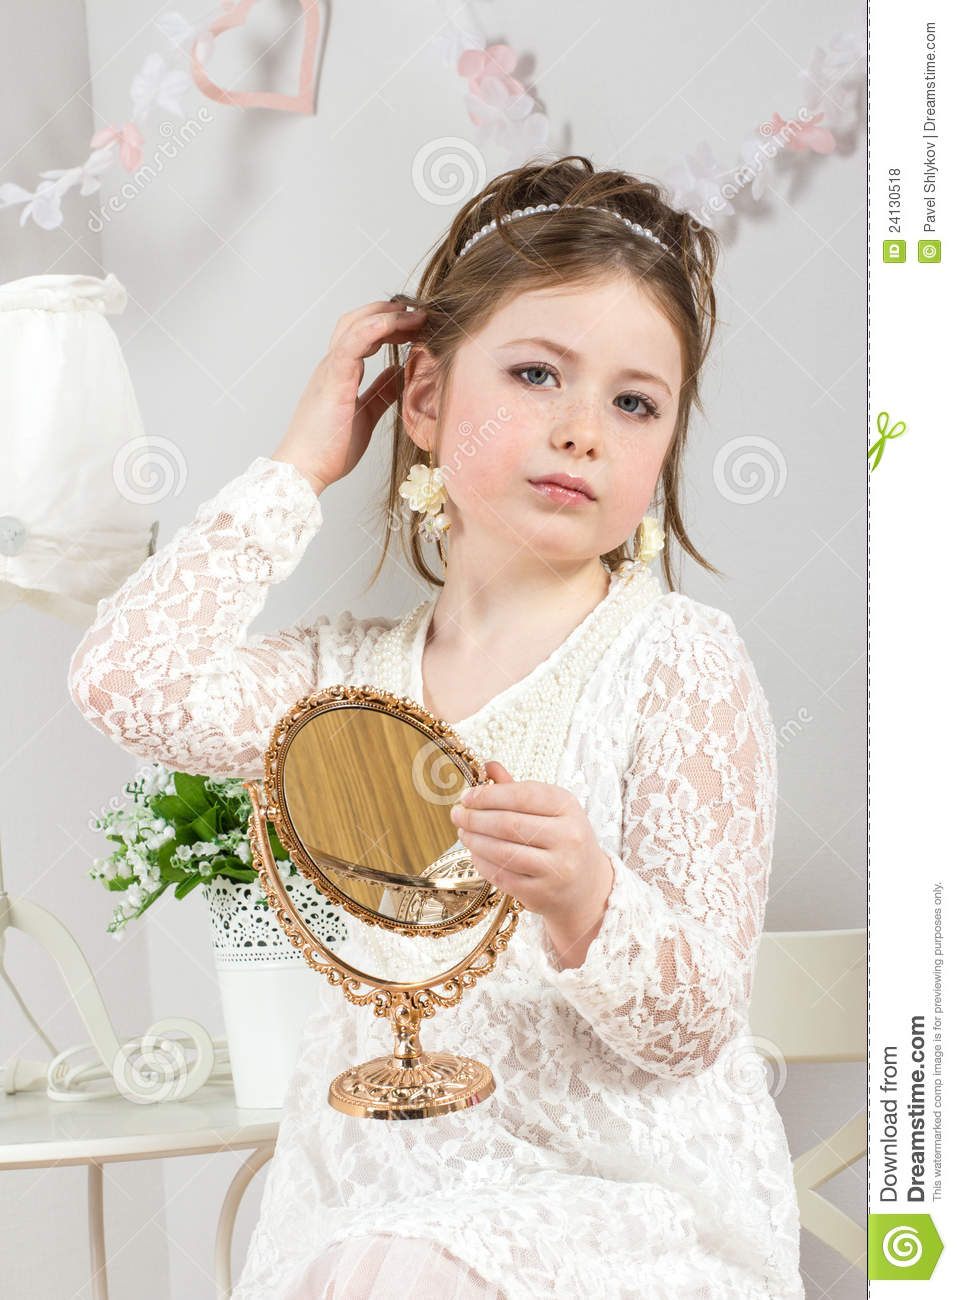 A beautiful little girl looking to small mirror royalty free stock photos image 24130518 - Pics of small little girls ...